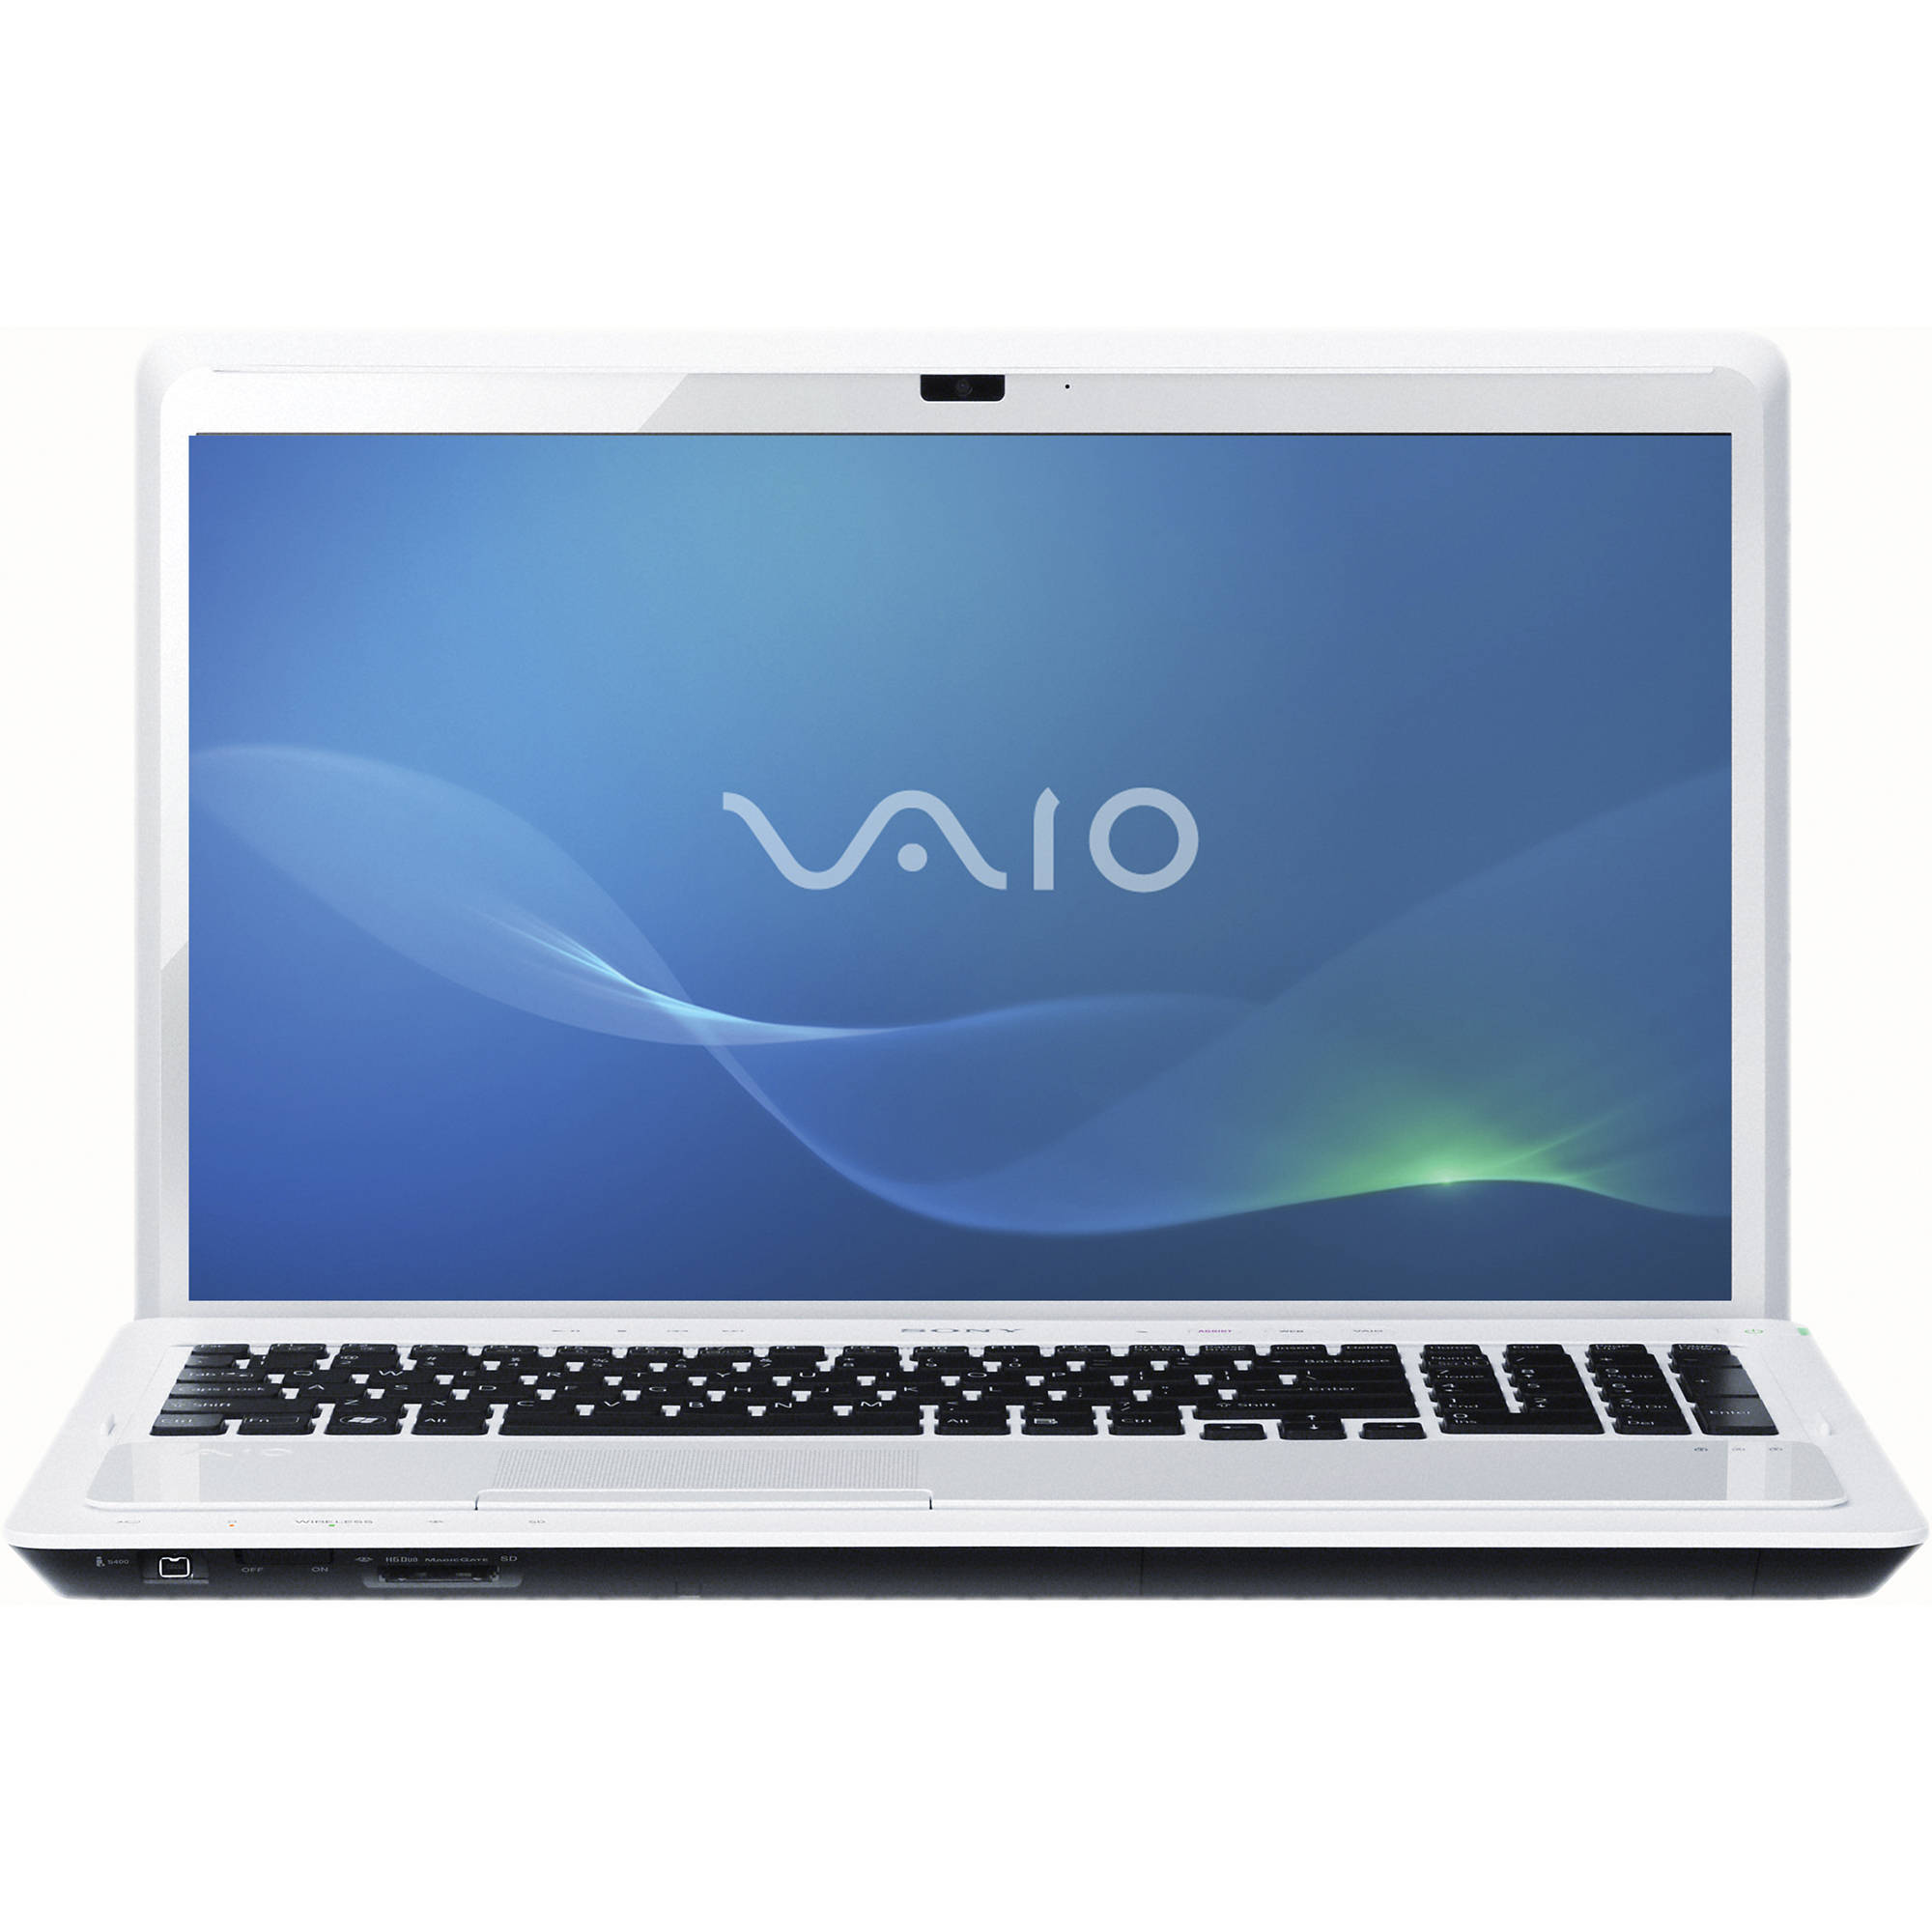 Sony Vaio VPCF22SFX Shared Library Driver (2019)